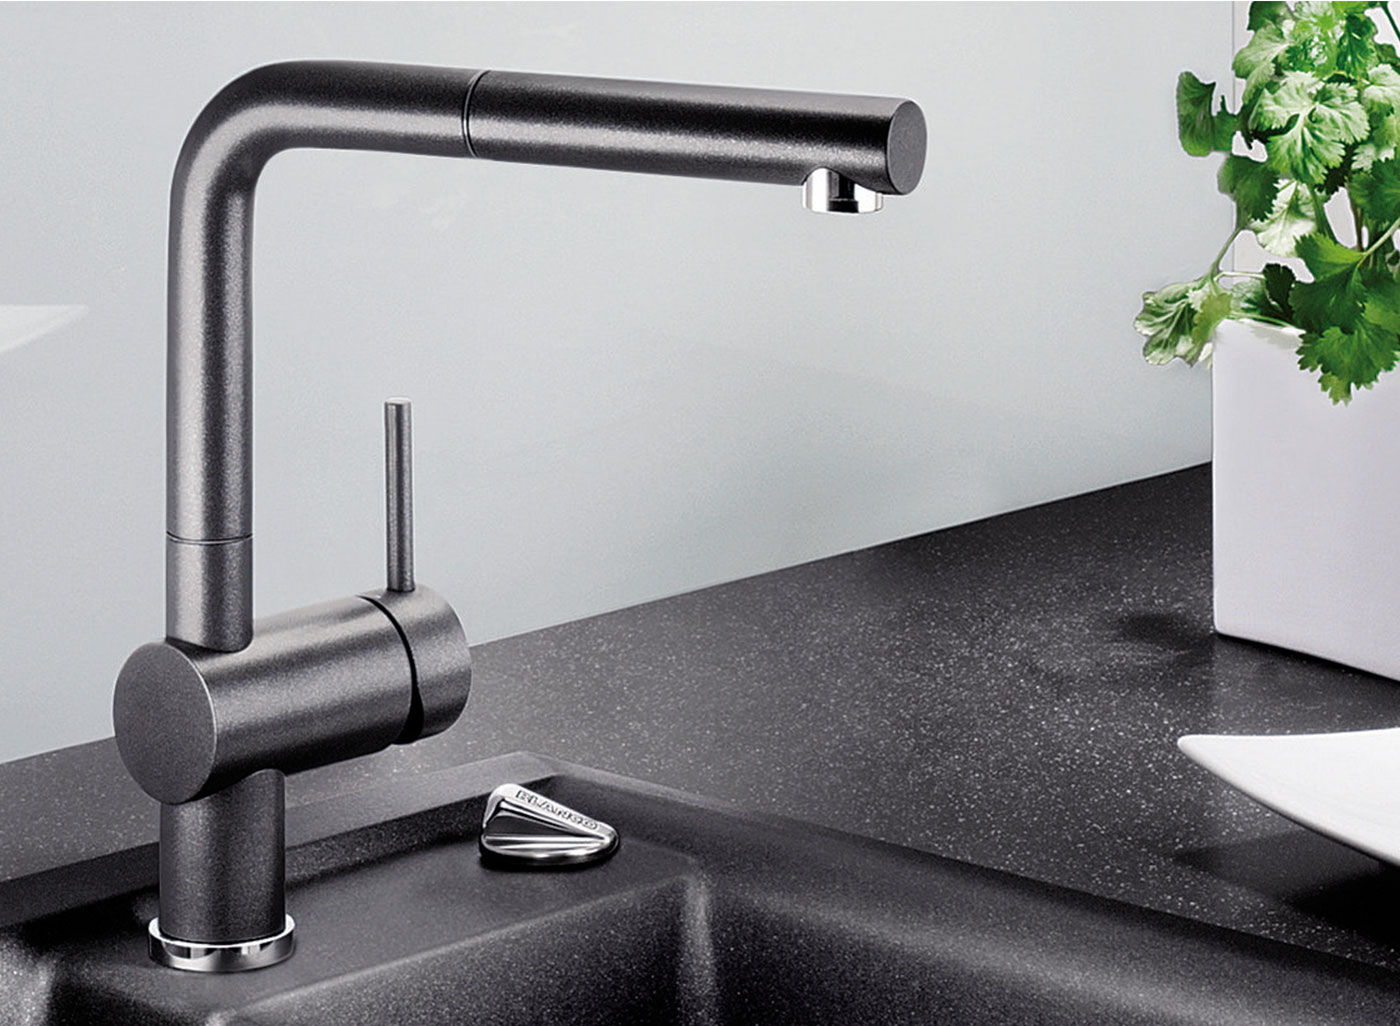 especially in combination with its pull-out hand piece. It's the perfect coordination between mixer tap and Silgranit sink.